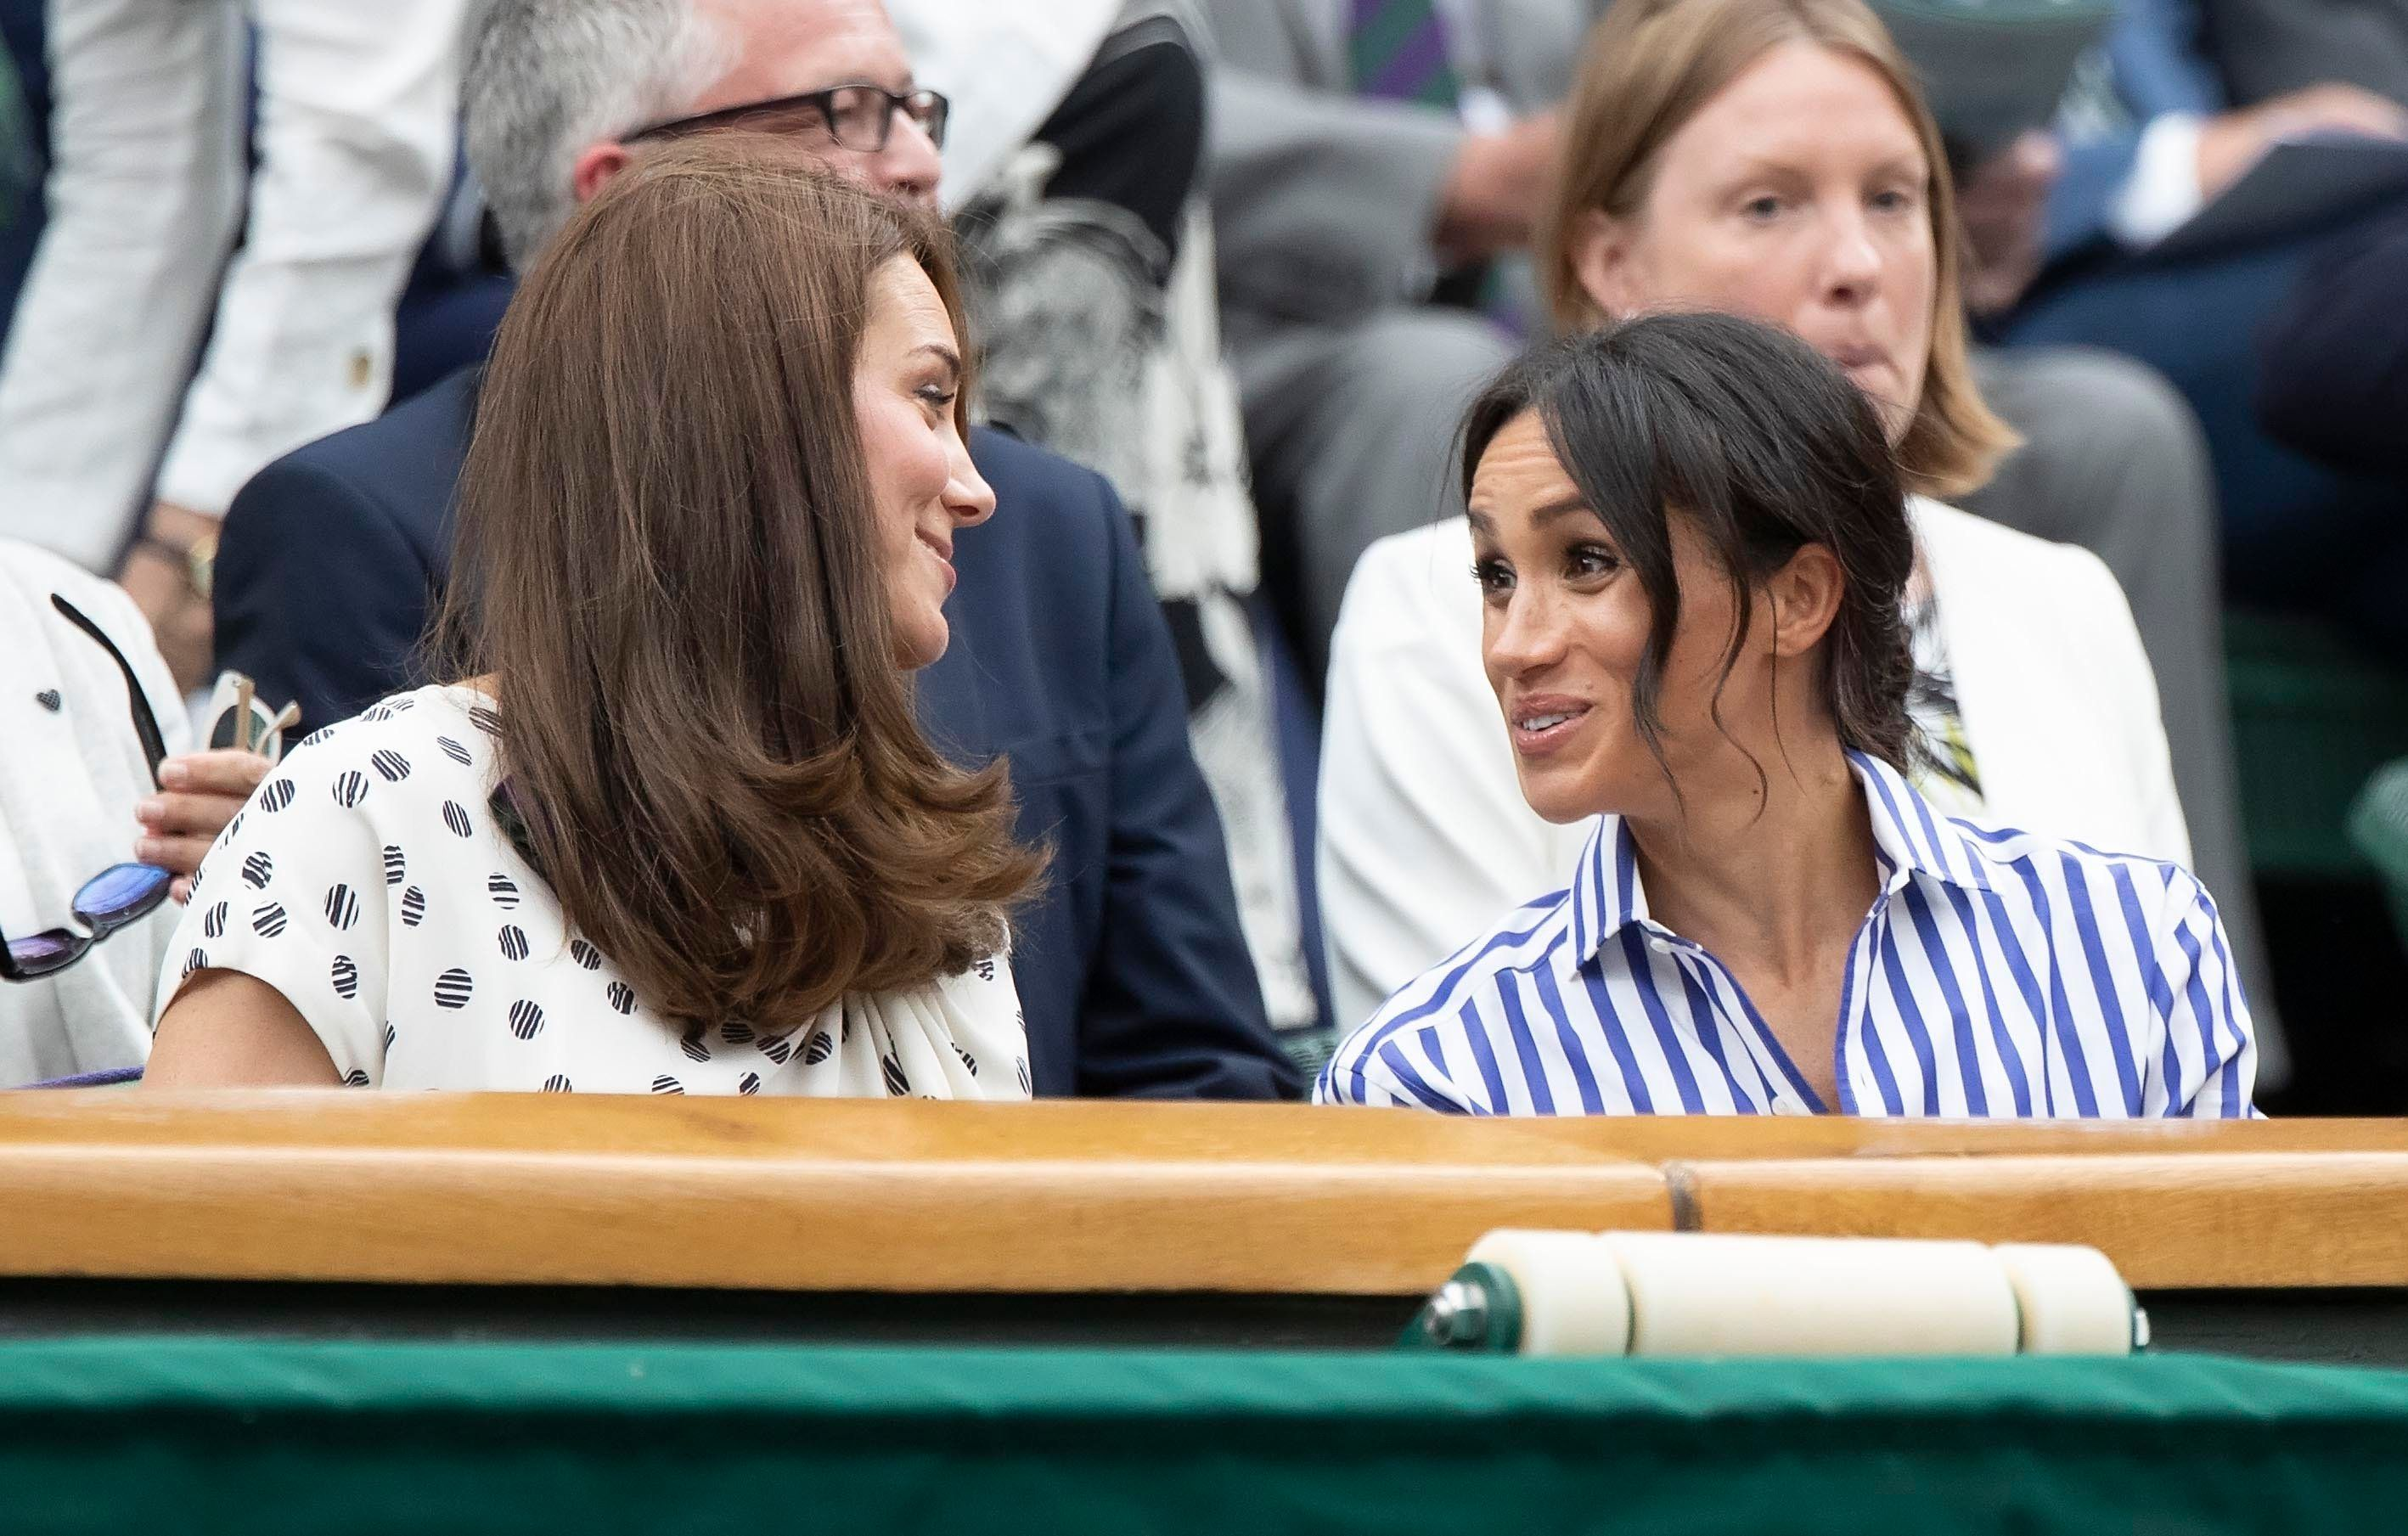 Kate Middleton subtly dismisses rumours of rift with Meghan Markle